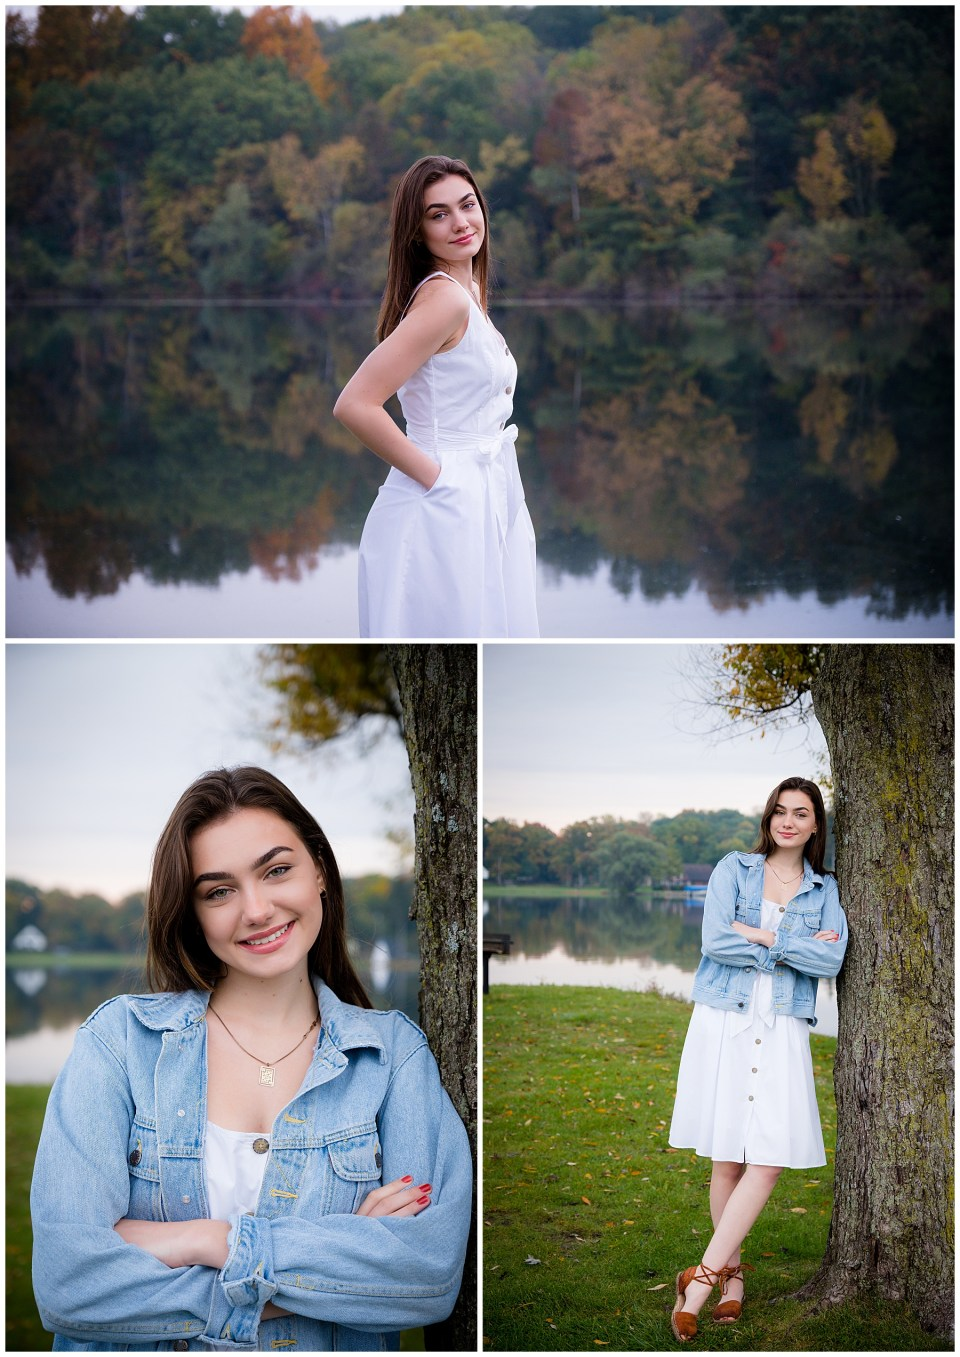 Michigan High School Senior Photos at Silver Lake